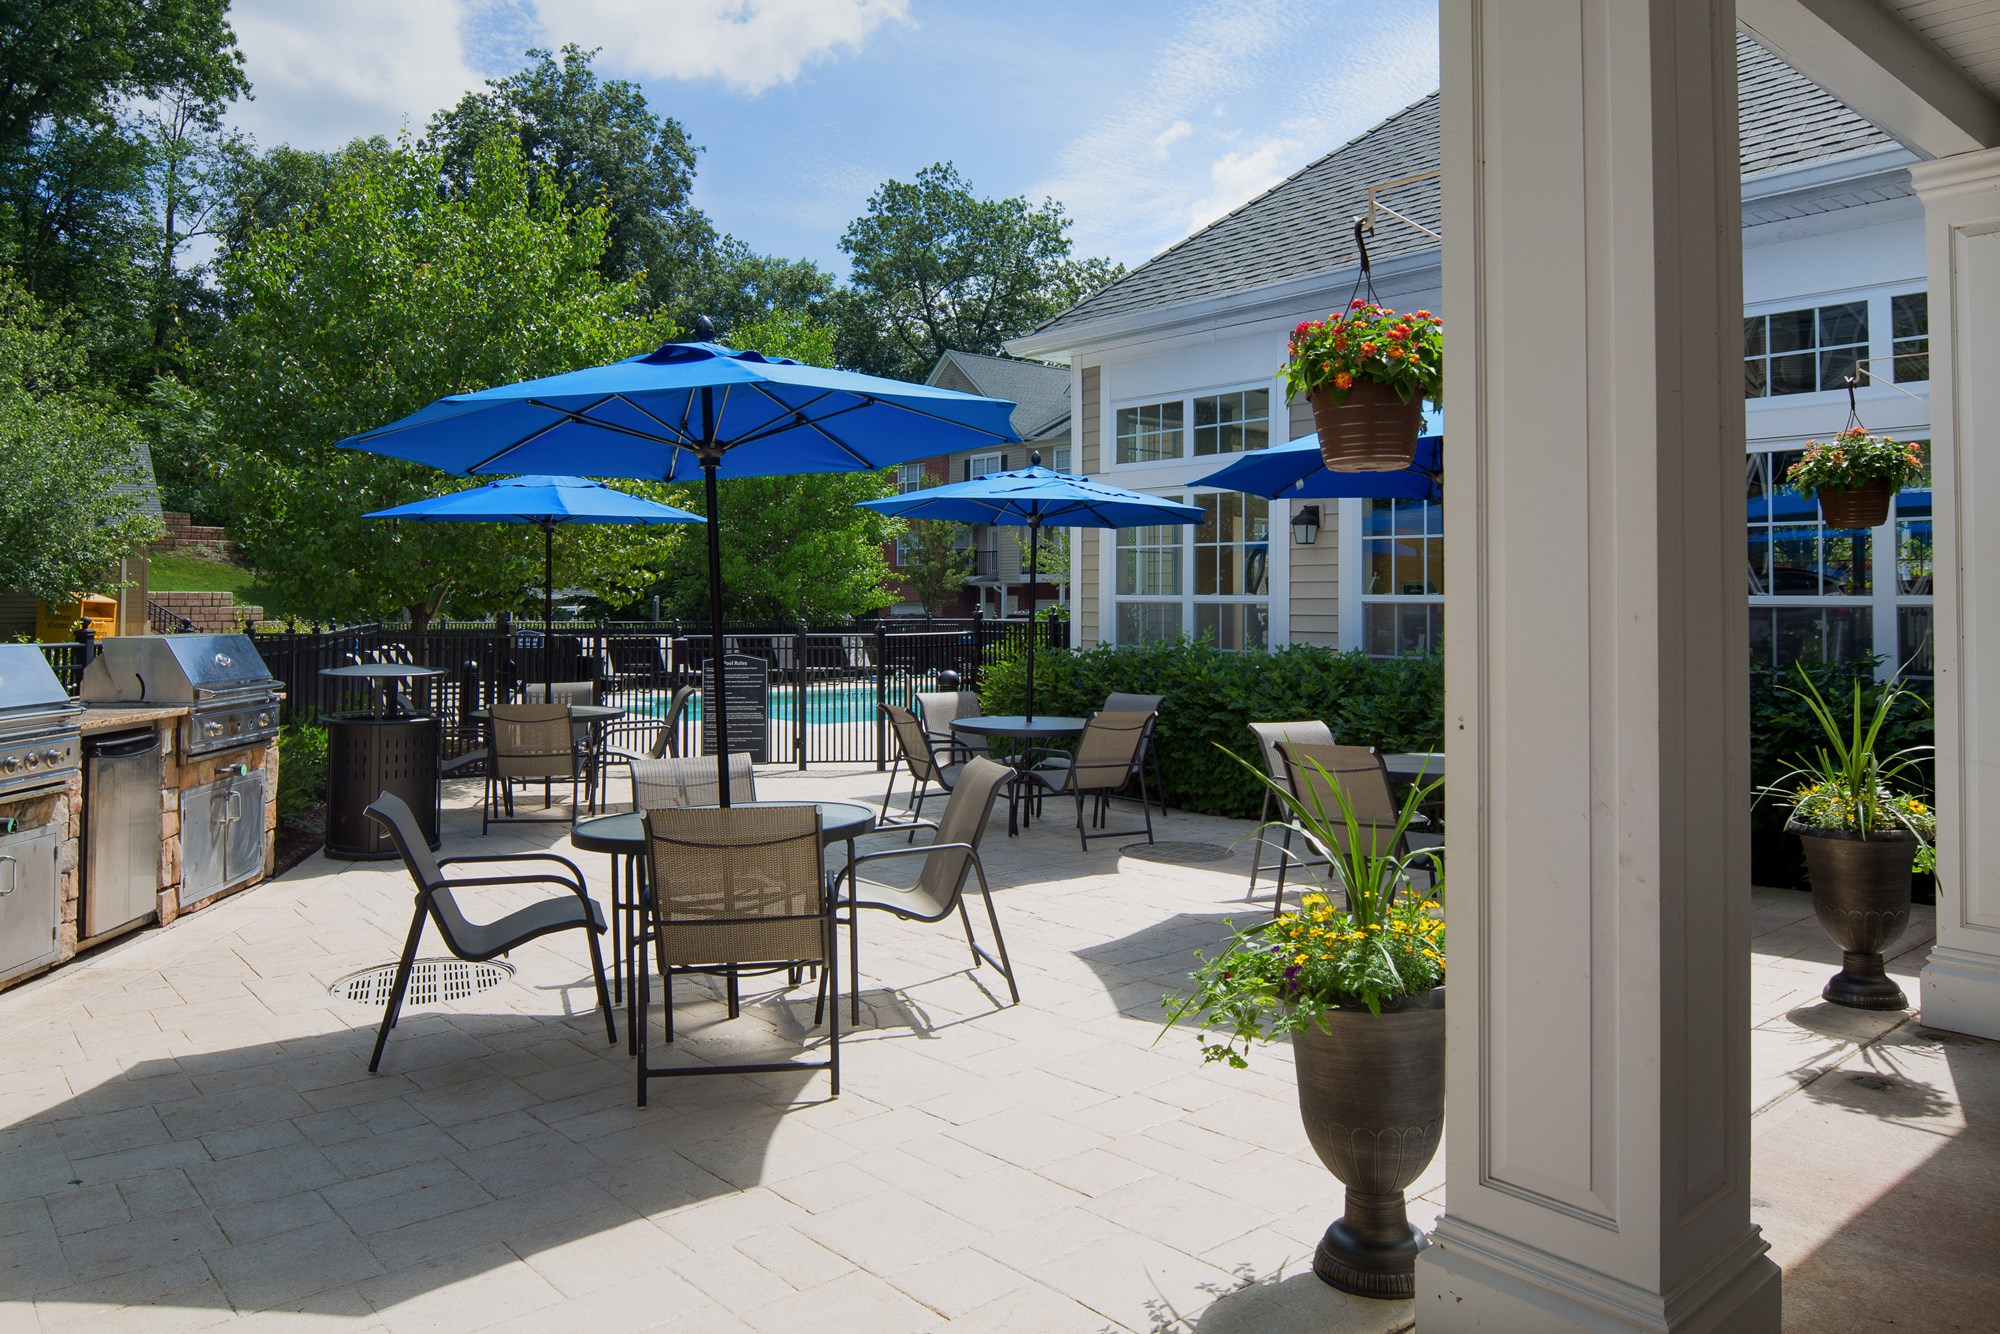 Grills at Huntington Townhomes in Shelton, CT